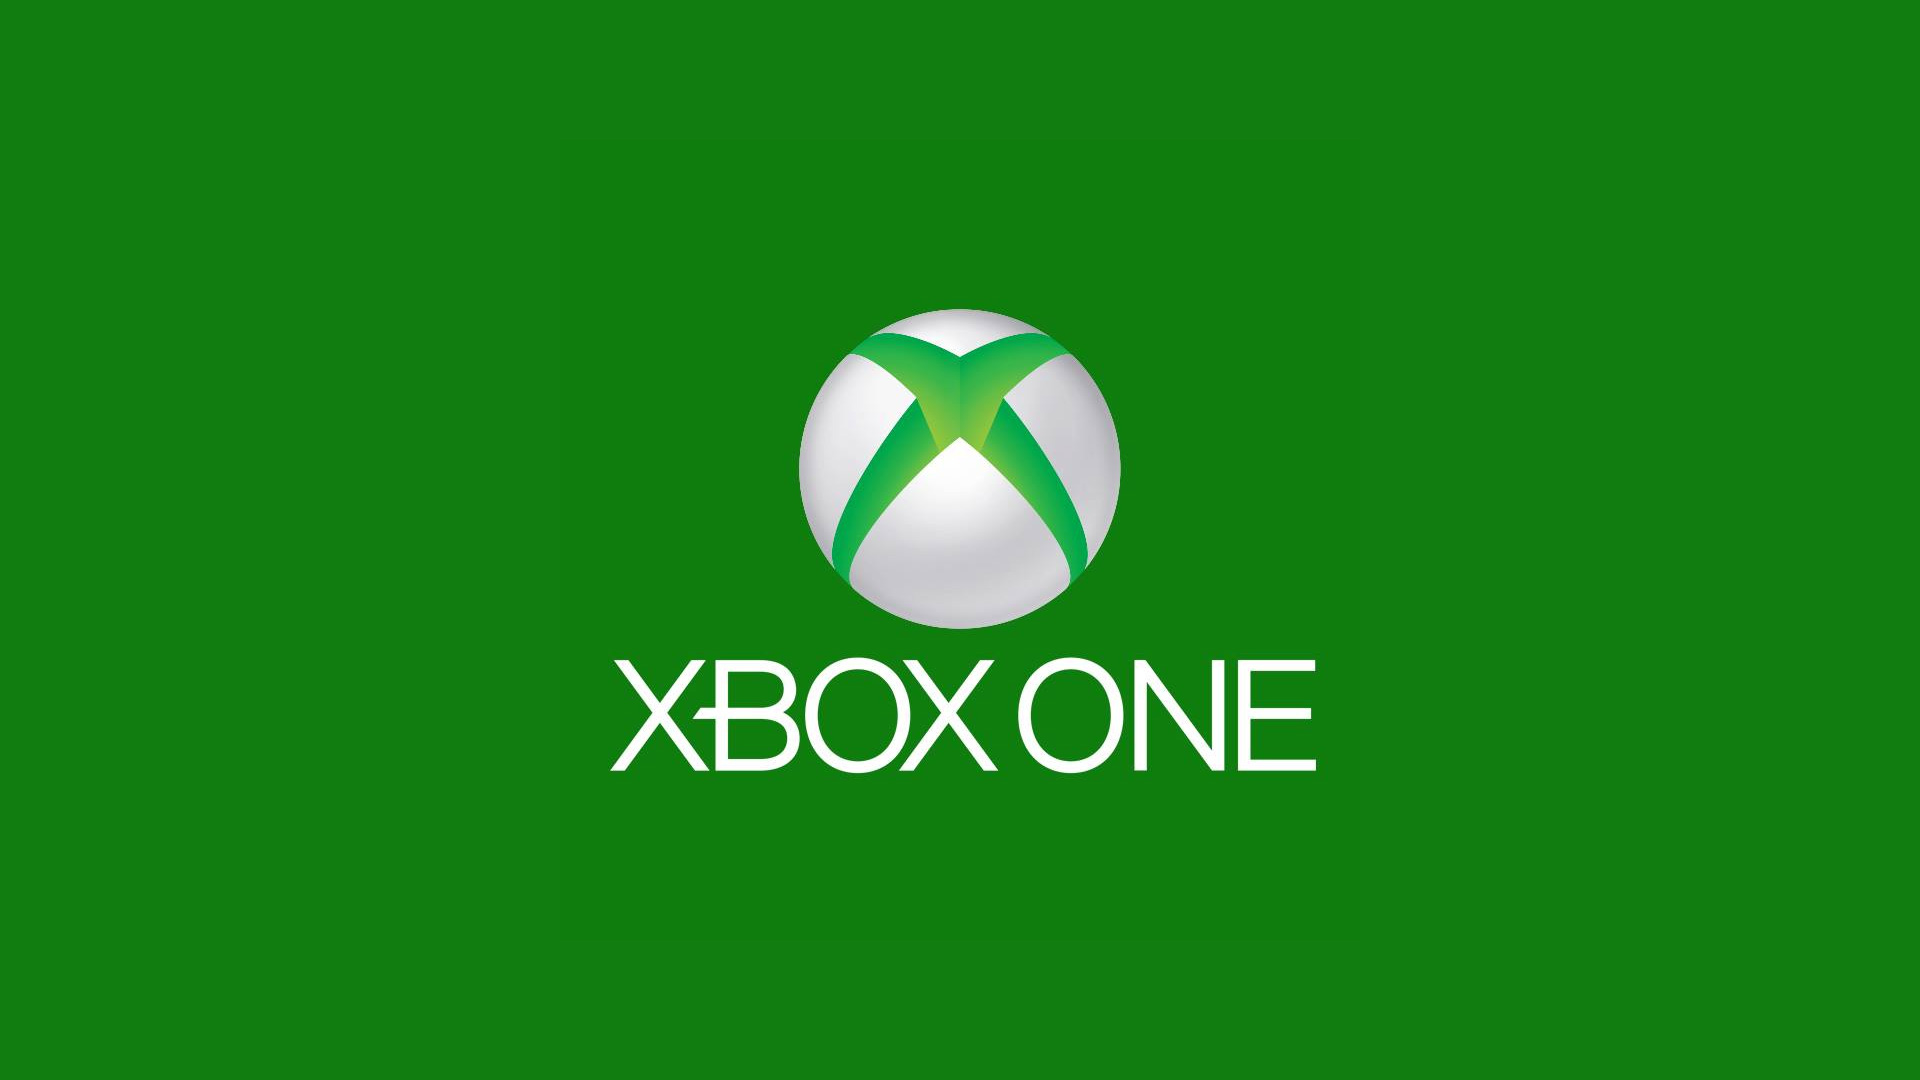 Xbox One Logo 1080p Wallpaper Xbox One Logo 720p Wallpaper 1920x1080